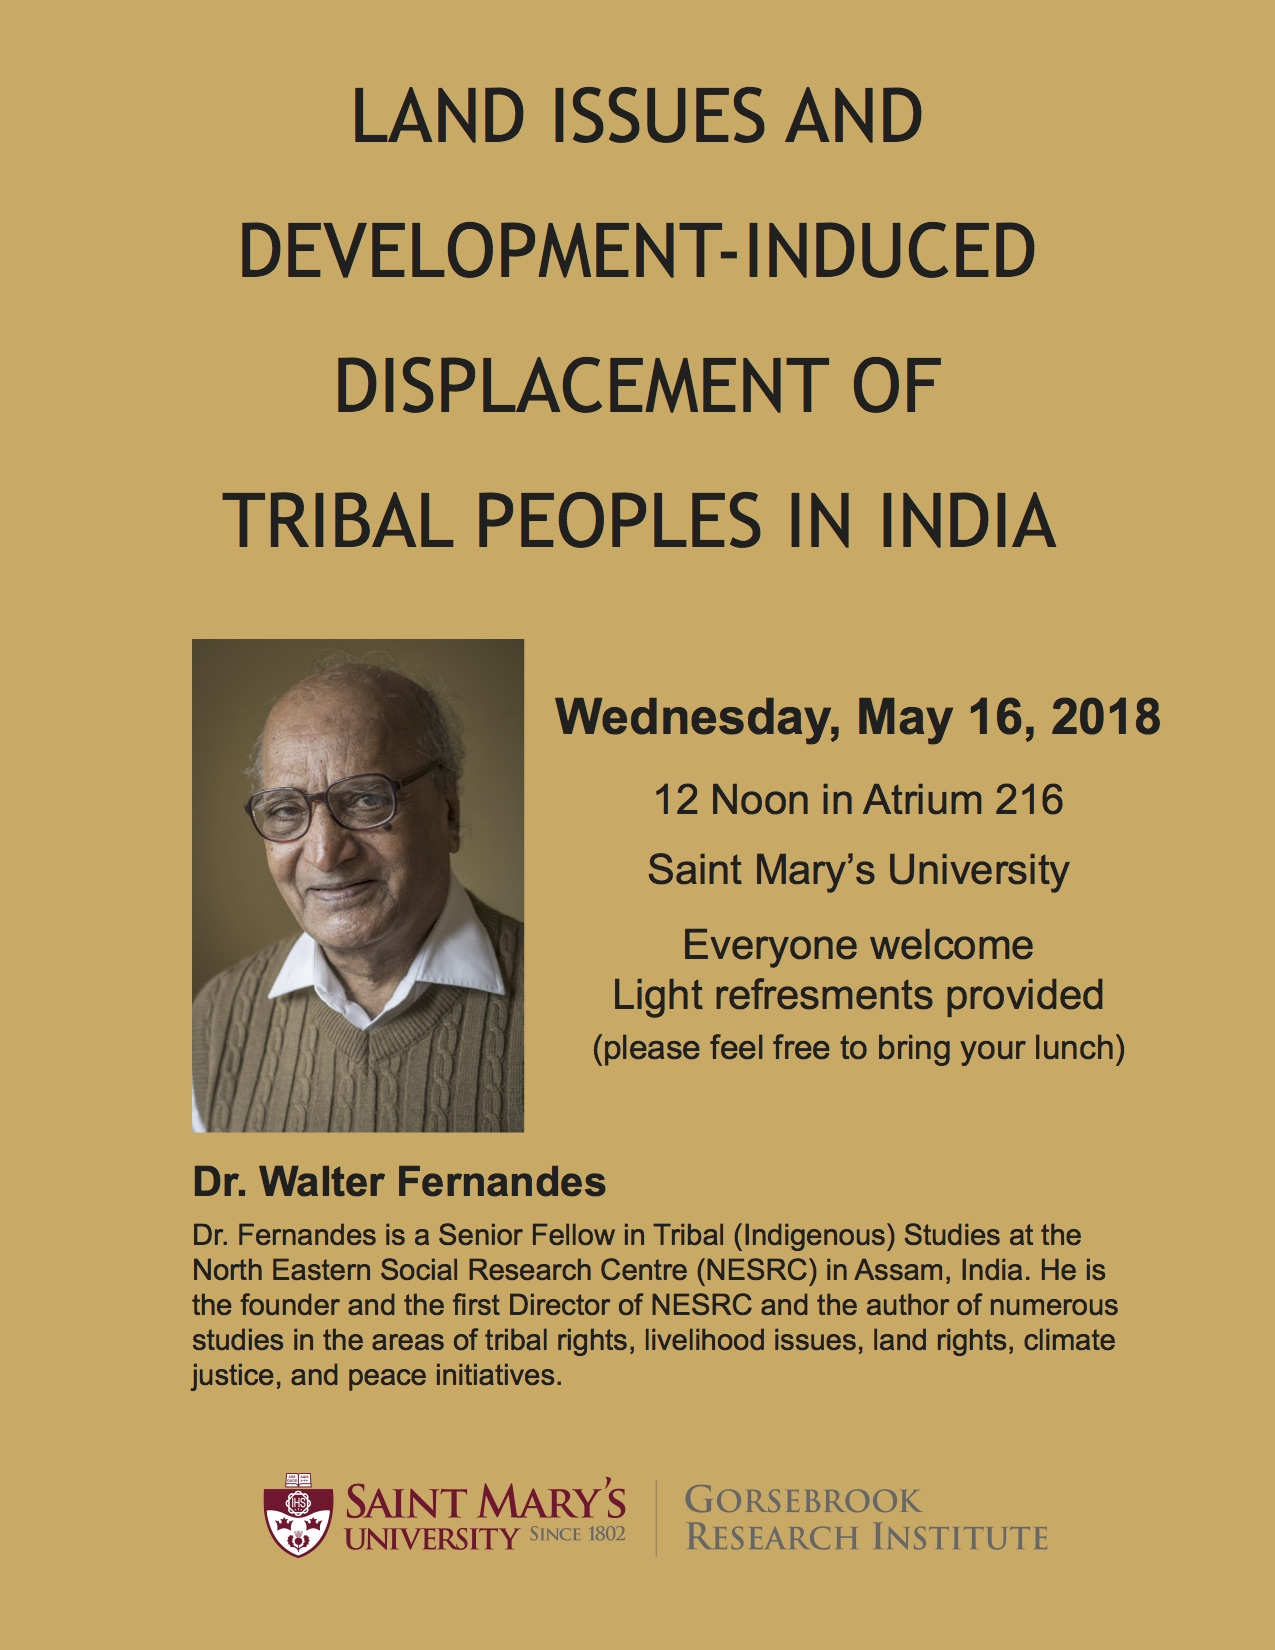 Dr. Walter Fernandes is a Senior Fellow in Tribal (Indigenous) Studies at the North Eastern Social Research Centre (NESRC) in Assam, India. He is the founder and the first Director of NESRC and the author of numerous studies in the areas of tribal rights, livelihood issues, land rights, climate justice, and peace initiatives.Everyone welcome to attend the lecture. Light refresments provided (please feel free to bring your lunch).